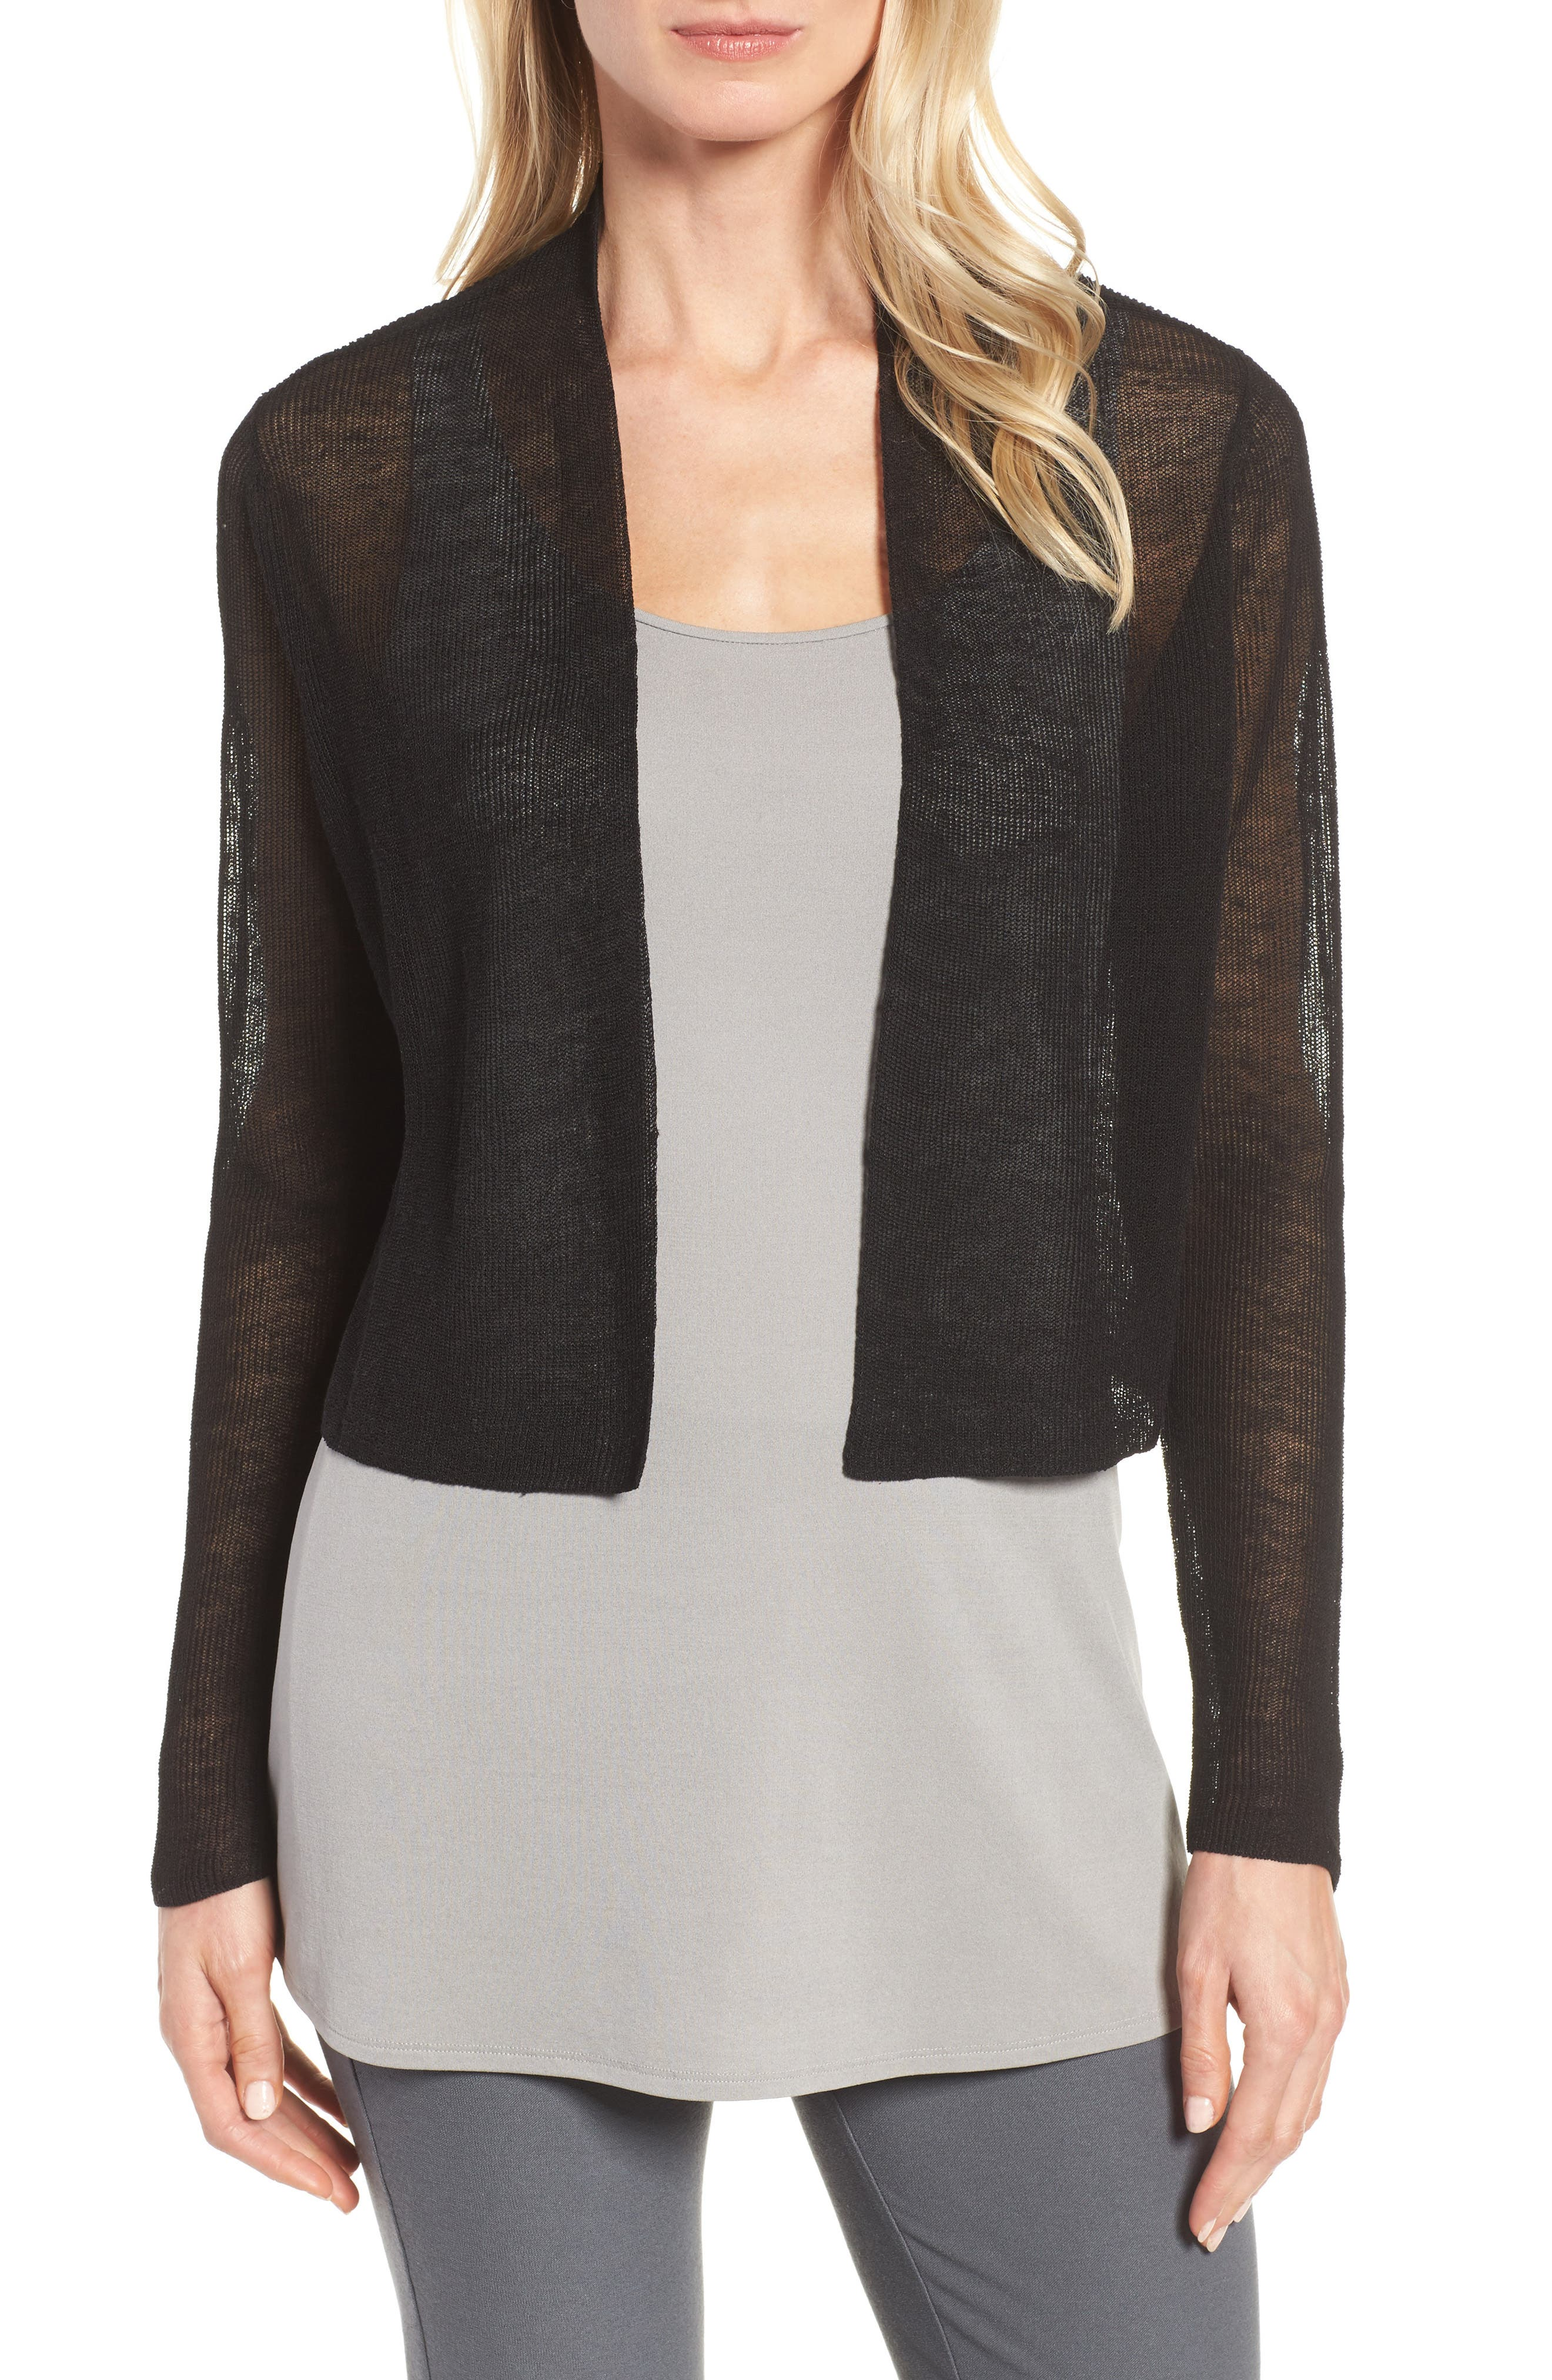 Organic Linen Blend Crop Cardigan,                         Main,                         color, Black